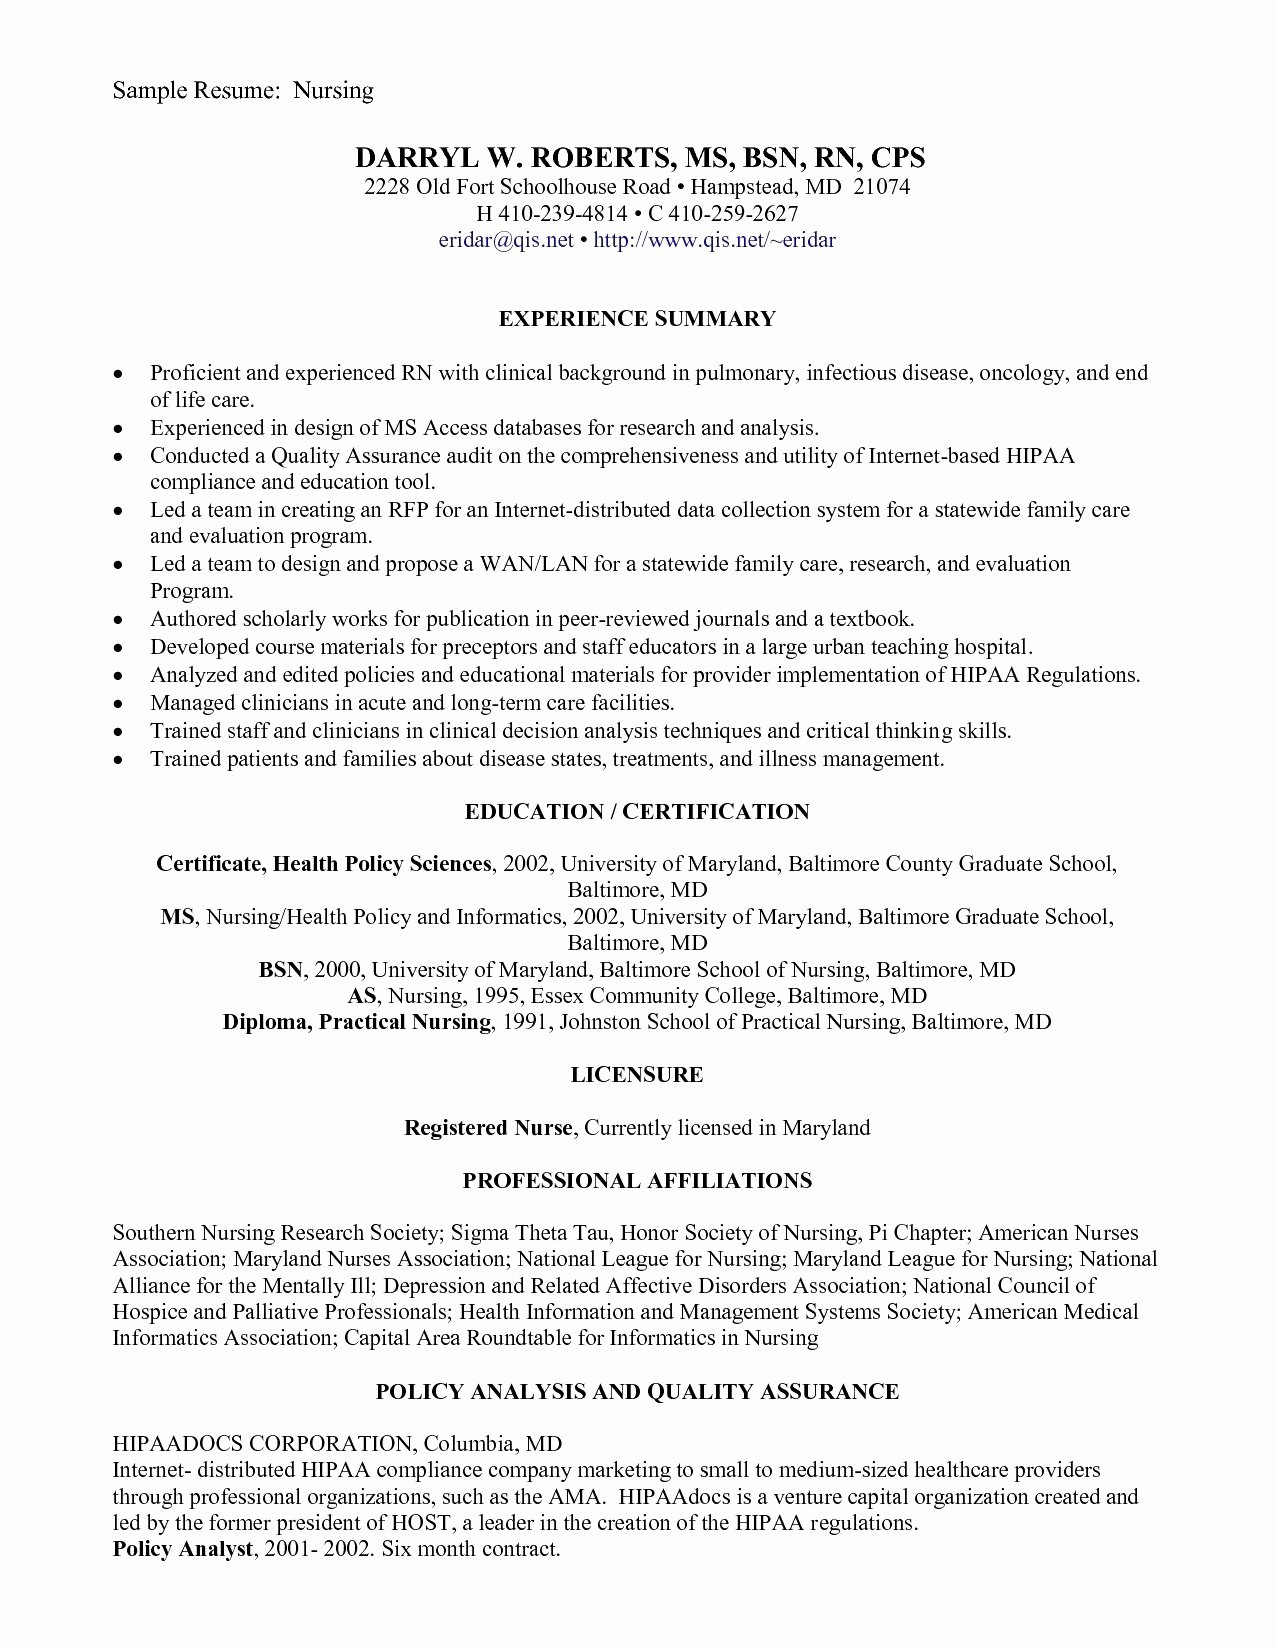 Nurse Practitioner Cv Template Awesome 20 Fresh New Grad Nurse Practitioner Resume Ve Aful